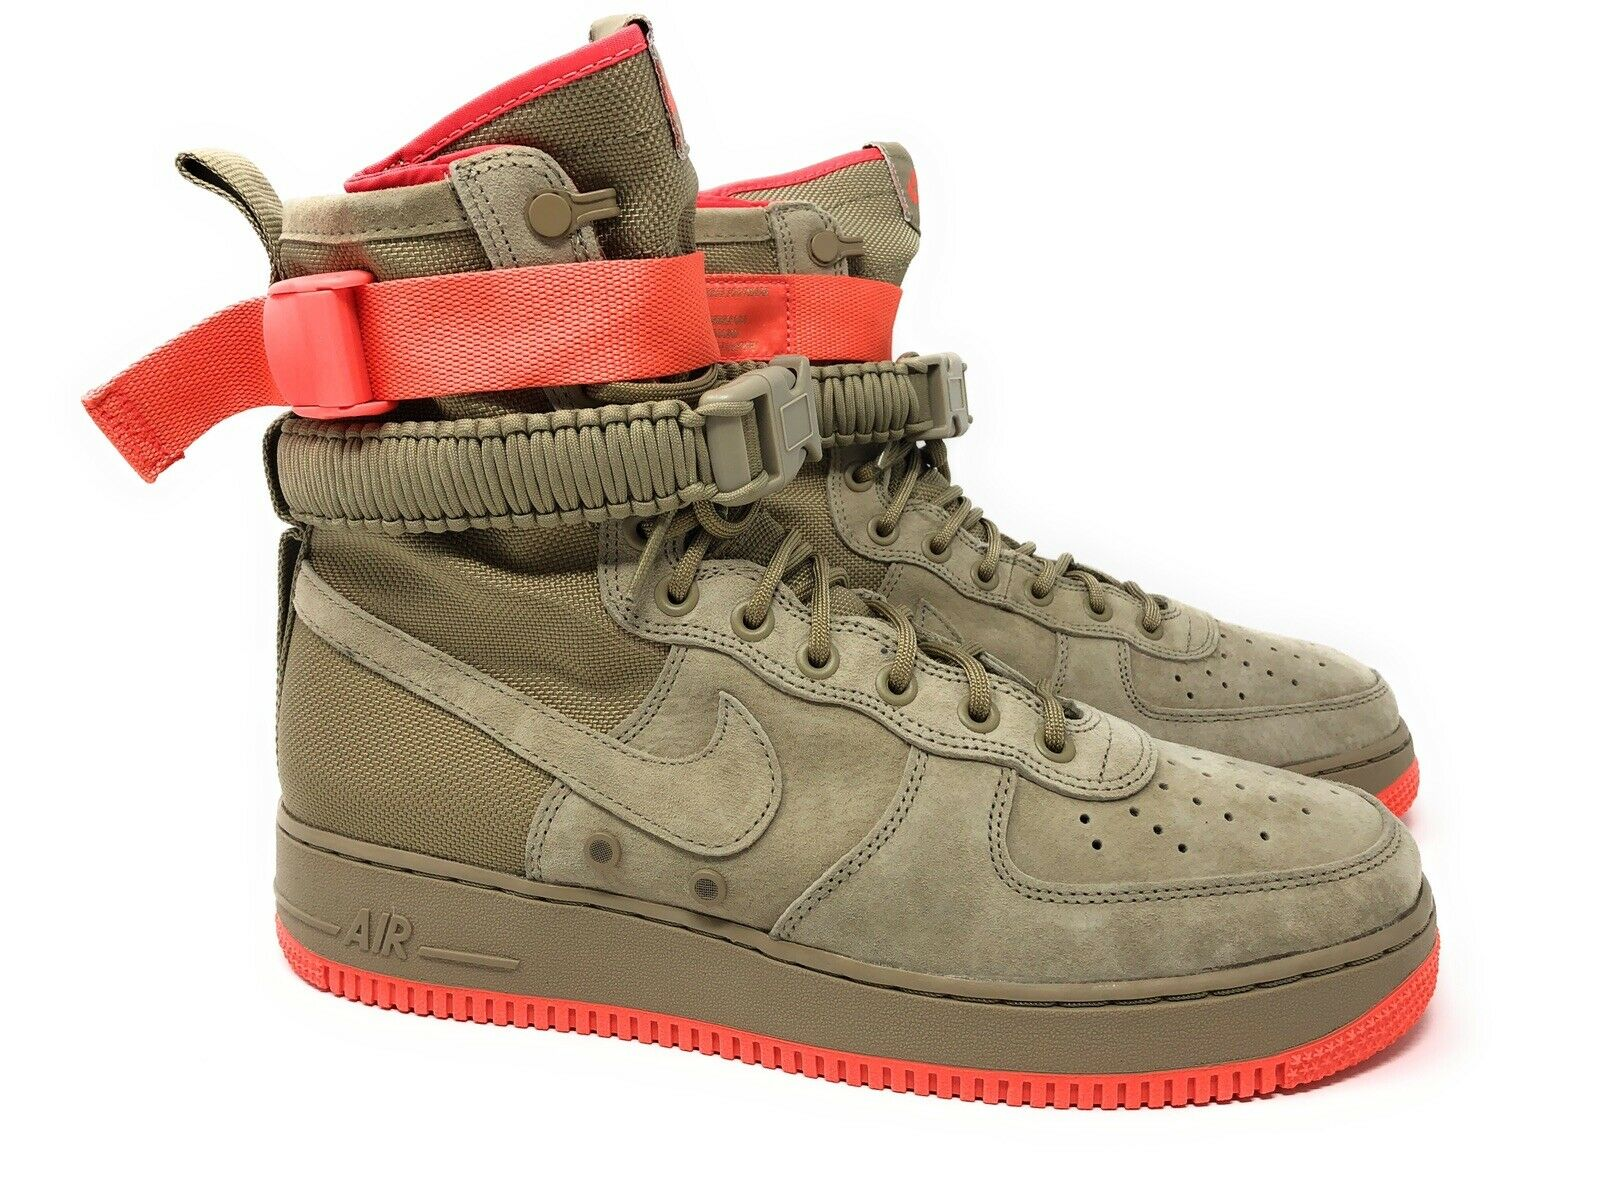 NIKE SF AF1 864024 205 KHAKI TAN RUSH CORAL PINK -SPECIAL FIELD AIR FORCE-STRAPS